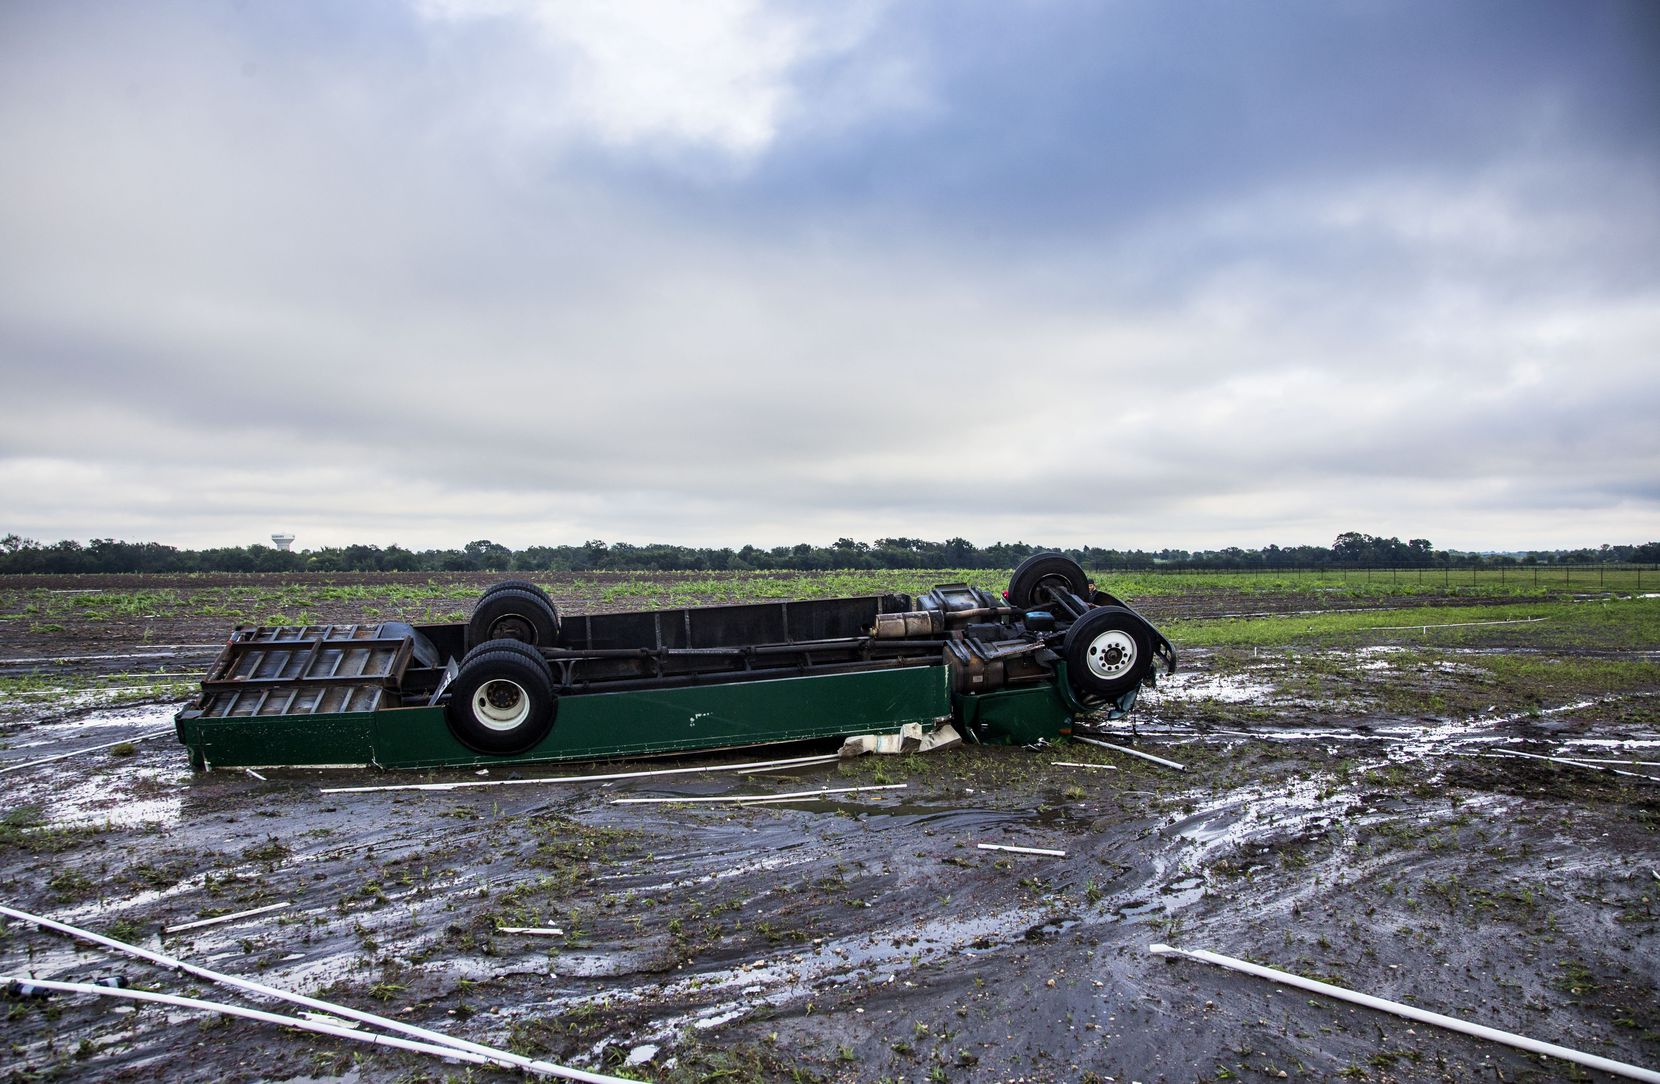 An overturned truck with Spirit of Waxahachie Indian Band written on the side sits in an empty field after a rainstorm at Waxahachie High School on Oct. 13.